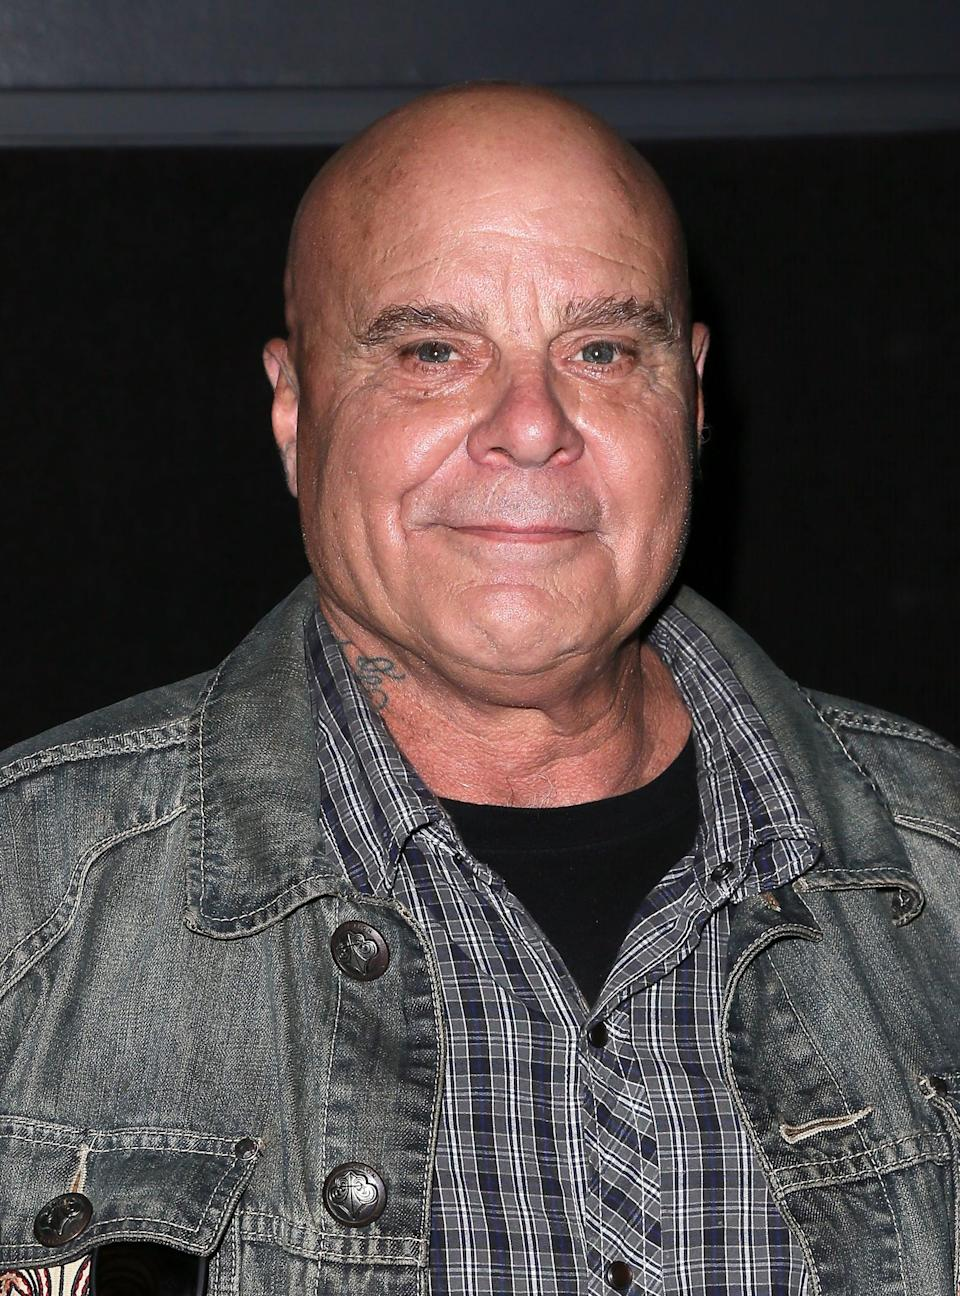 """<p>While Castle did play Michael for a majority of the original 1978 <strong><span class=""""nofilter"""">Halloween</span></strong>, it's the face of Tony Moran that you see when Michael is finally unmasked. After that memorable role, however, Moran actually retired from acting in movies. He did make a few guest appearances on TV, but those also ended by the early 1980s. In 2008, Moran made his big-screen return with a short film called <strong>The Lucky Break</strong>, but he has only had a couple of roles since.</p>"""